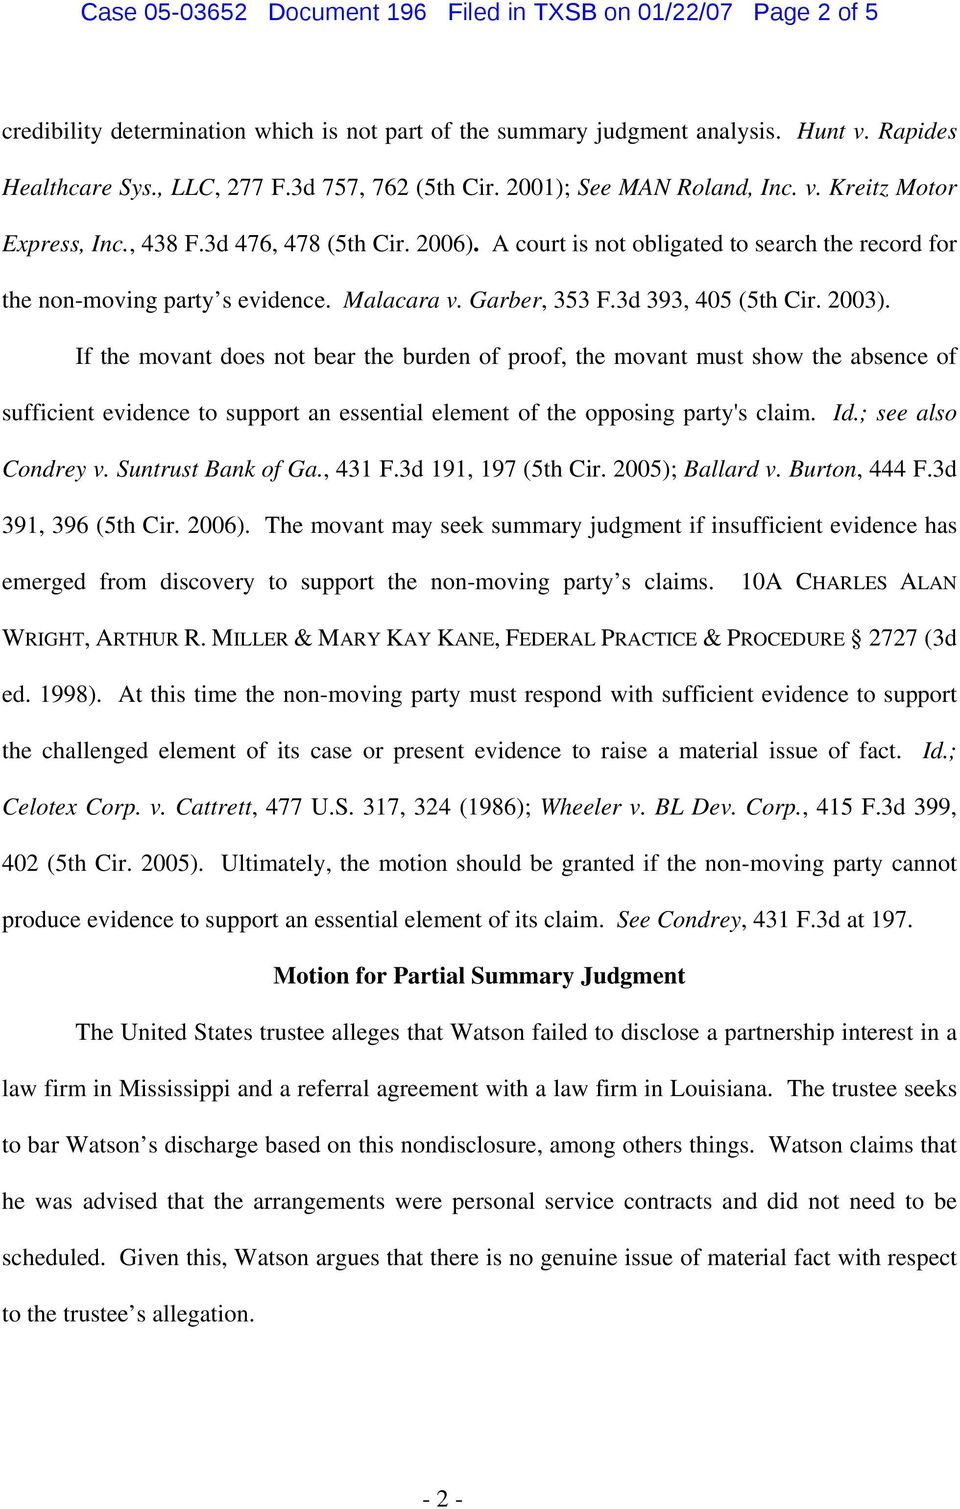 Malacara v. Garber, 353 F.3d 393, 405 (5th Cir. 2003).